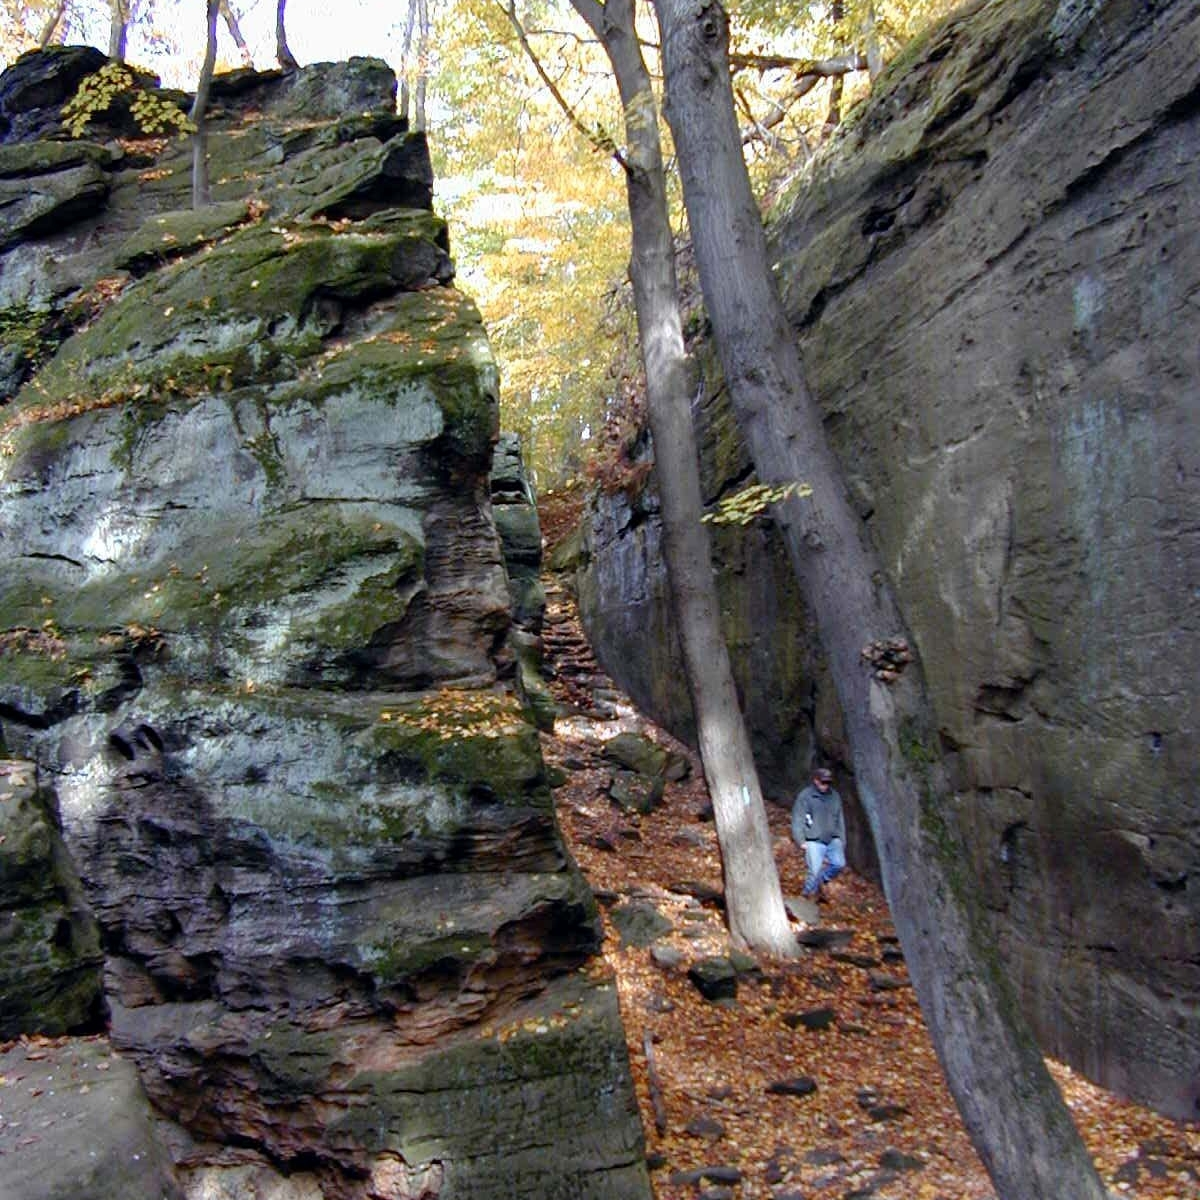 EAST BRANCH ROCKY RIVER GREENWAY PROTECTION PLAN